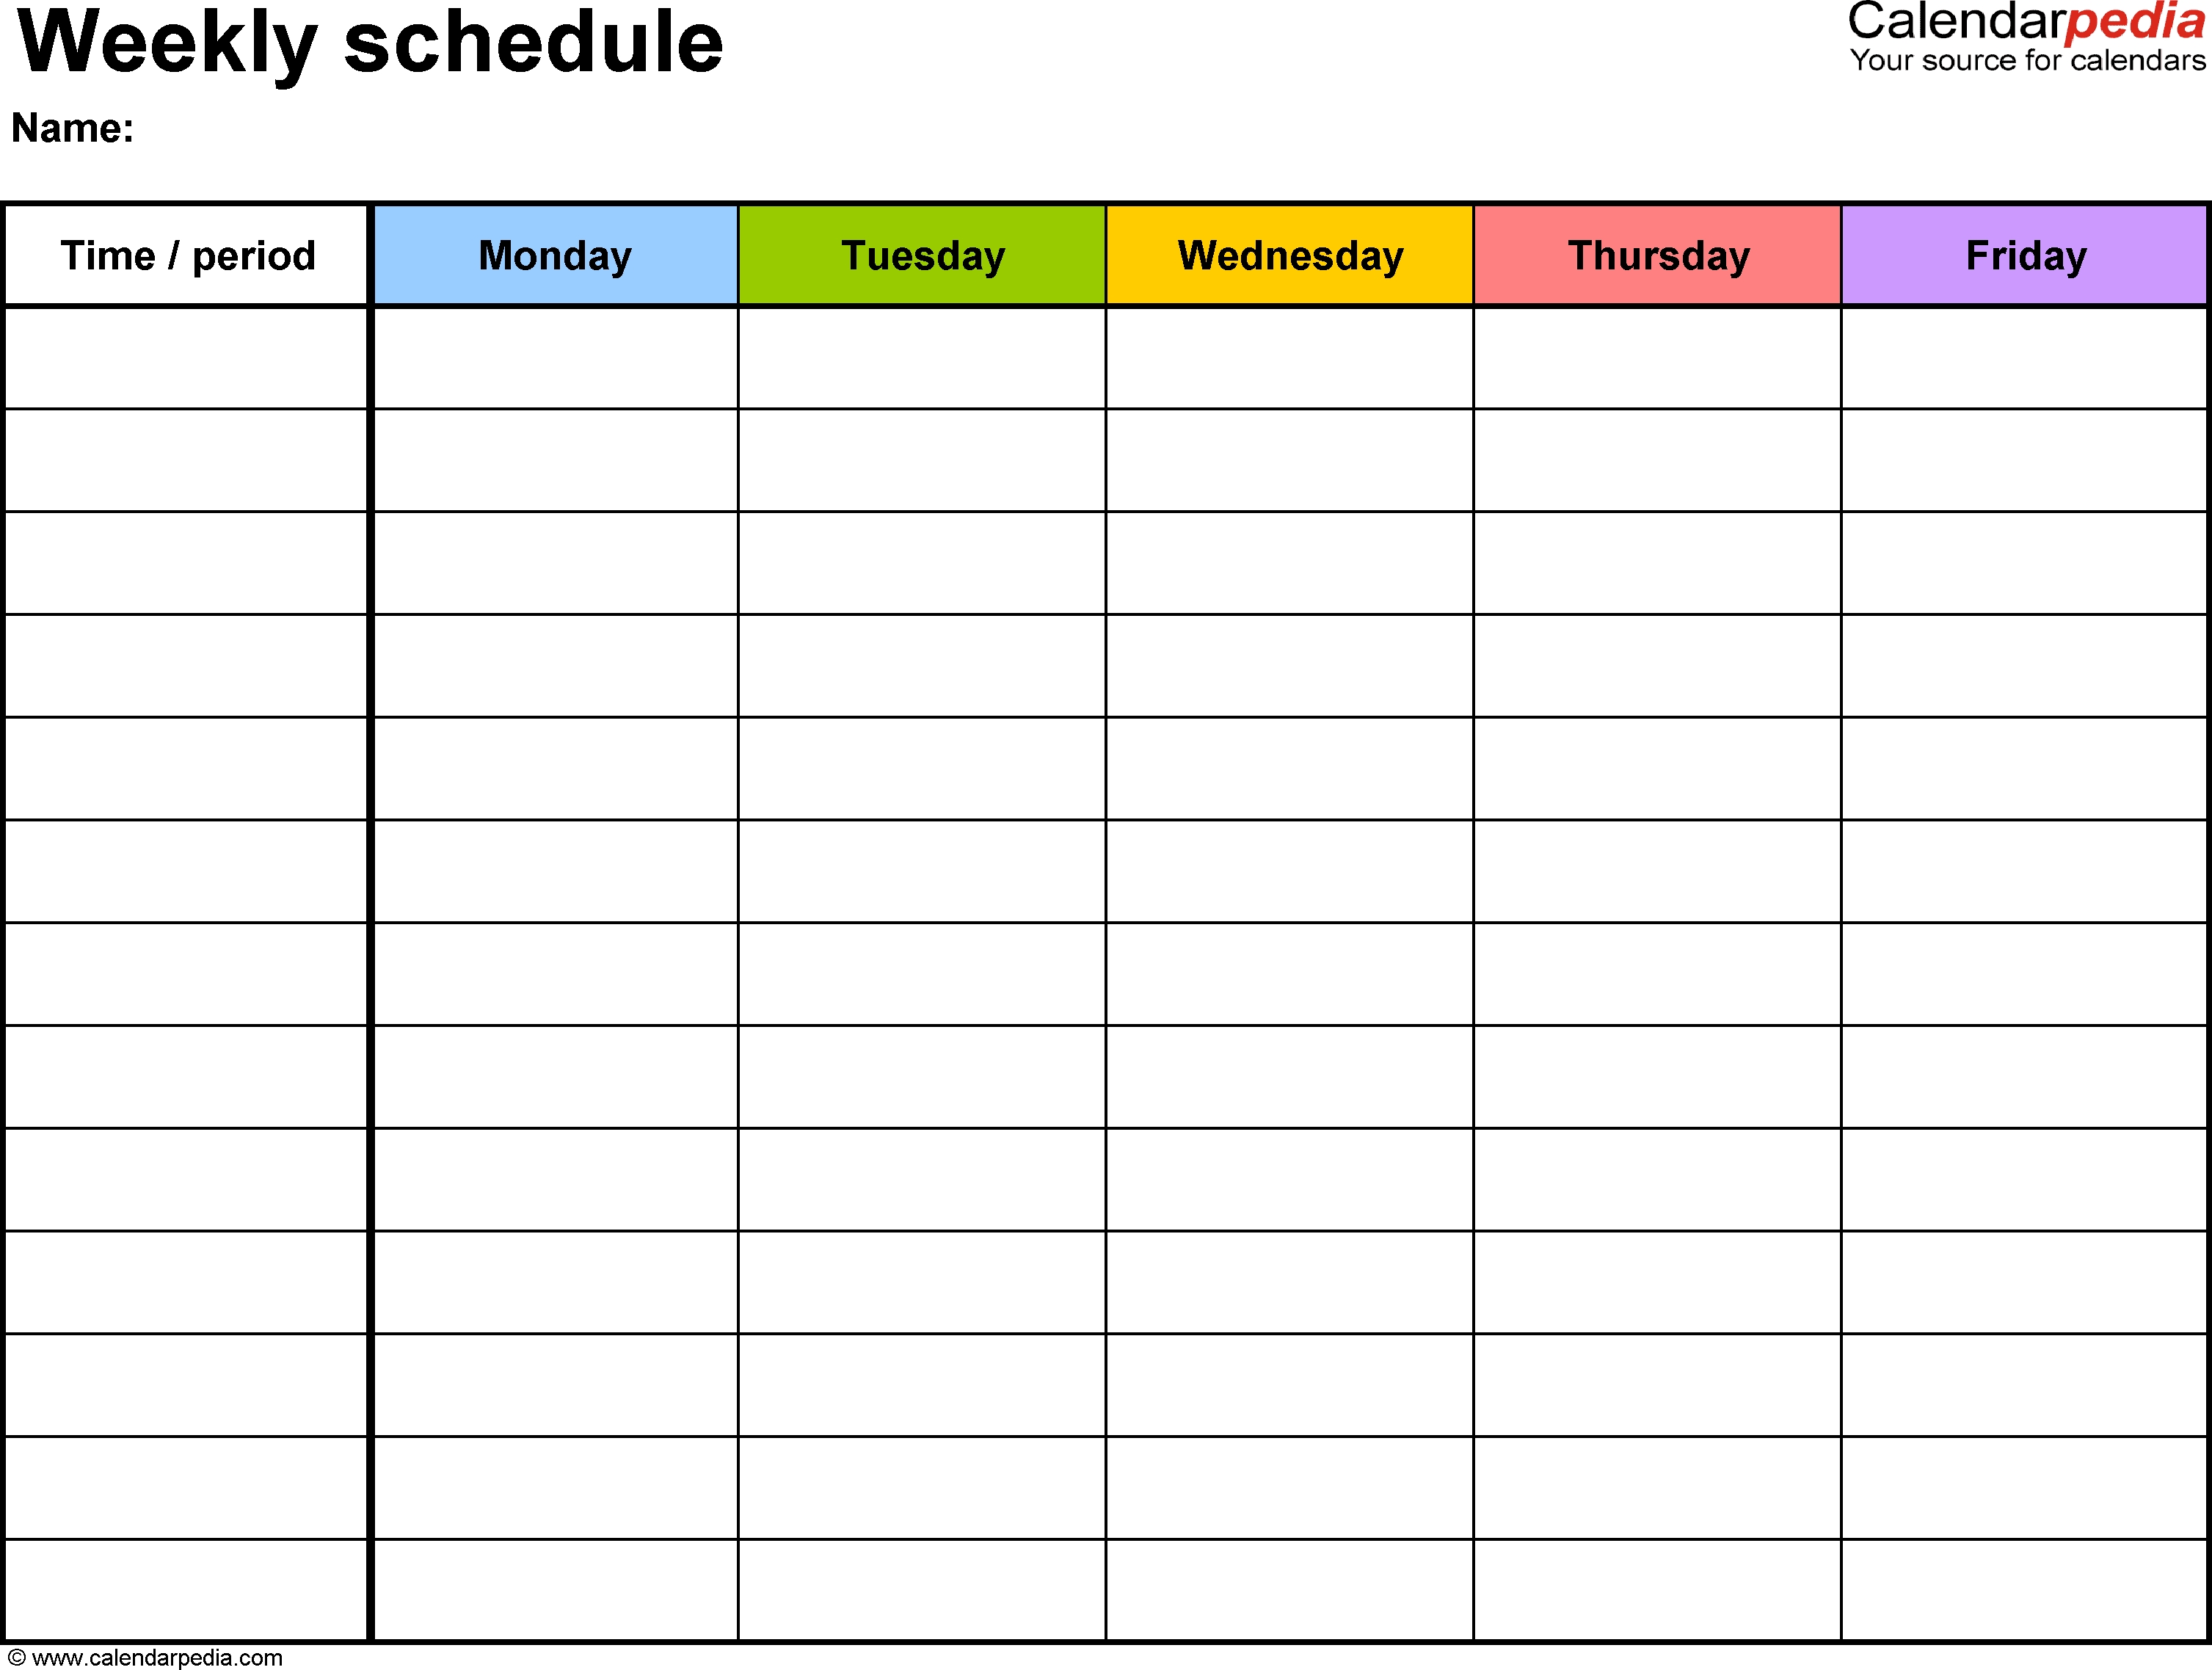 Free Weekly Schedule Templates For Excel - 18 Templates pertaining to Weekly Calander Lesson Plan Template